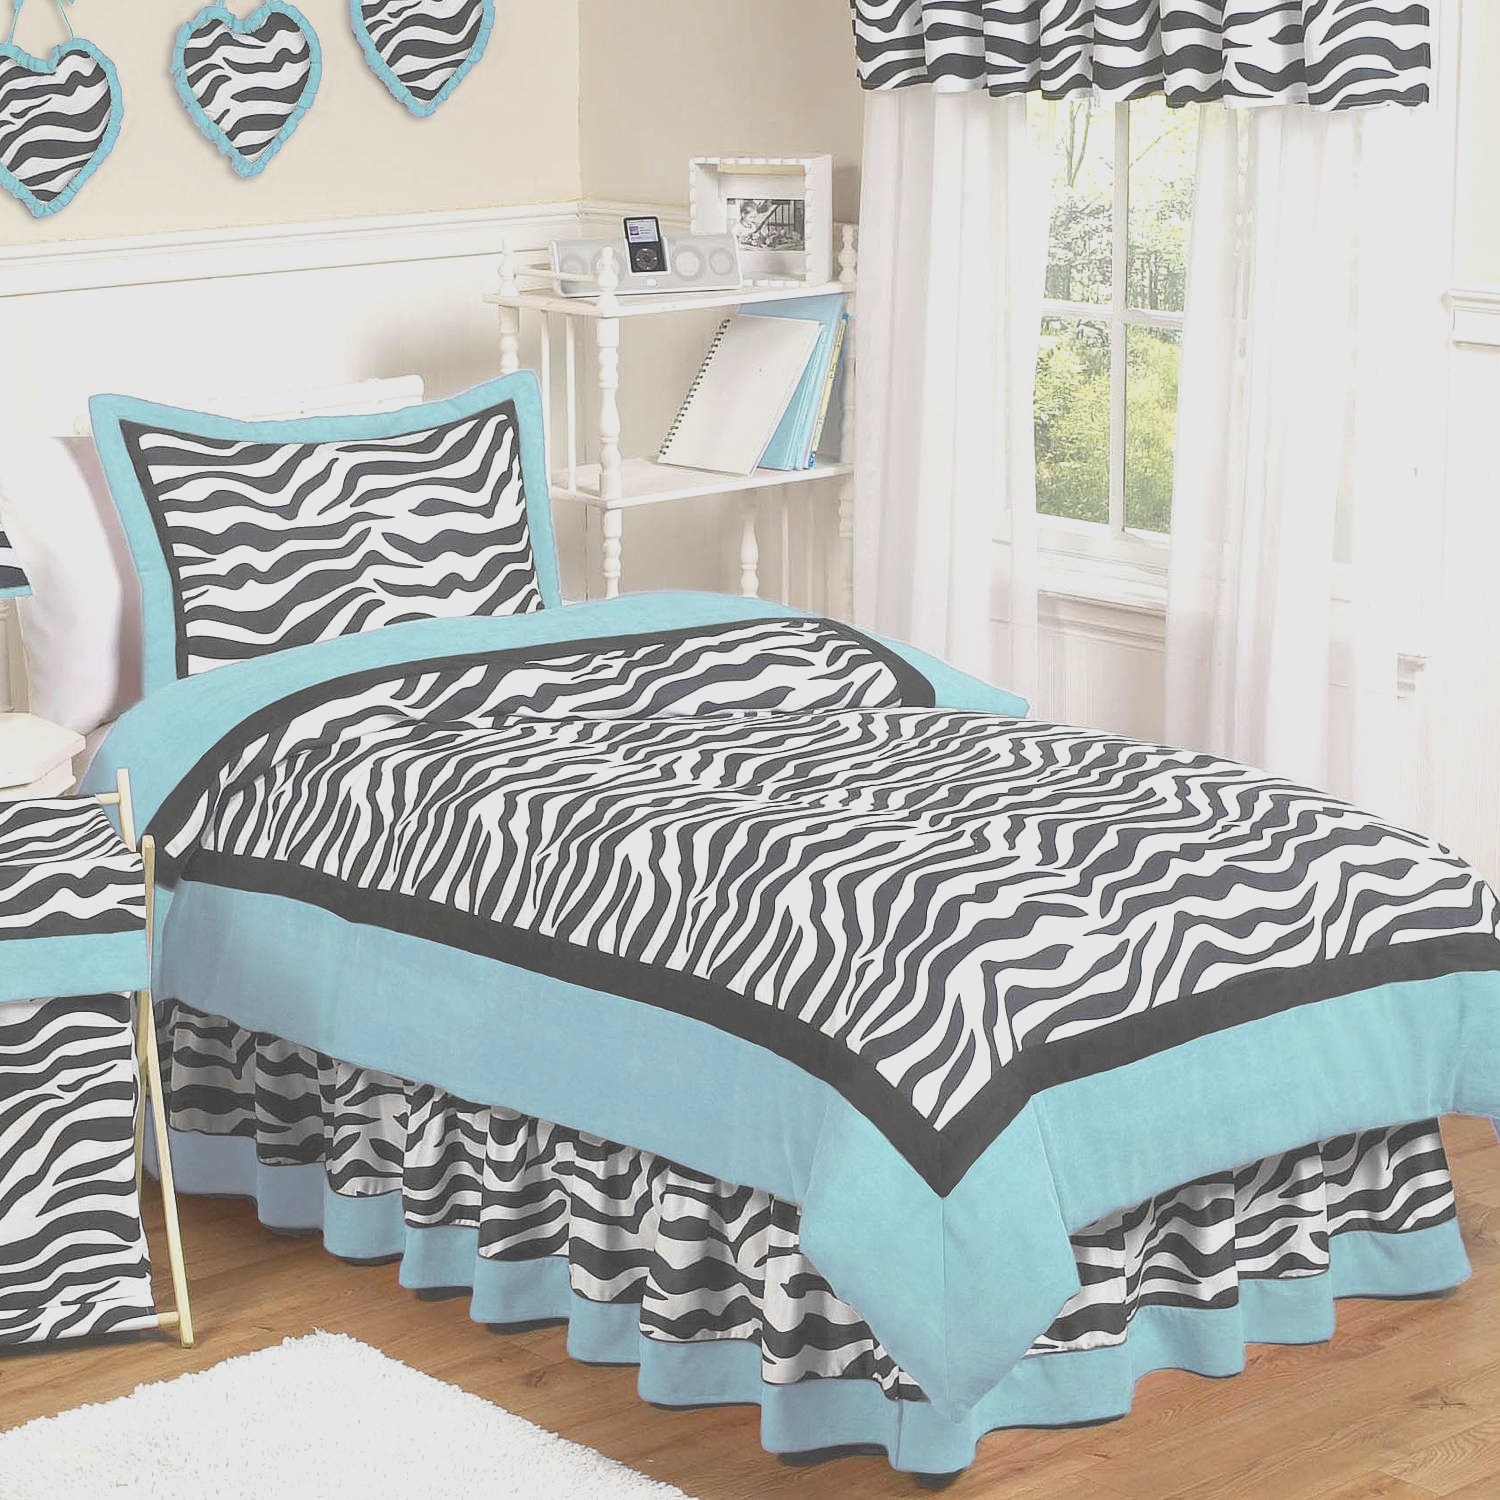 Luxury Zebra Print Decor Ideas In Photos Bedroom Atmosphere Curtains Christmas Welcome Home Room Animal Bathroom Apppie Org